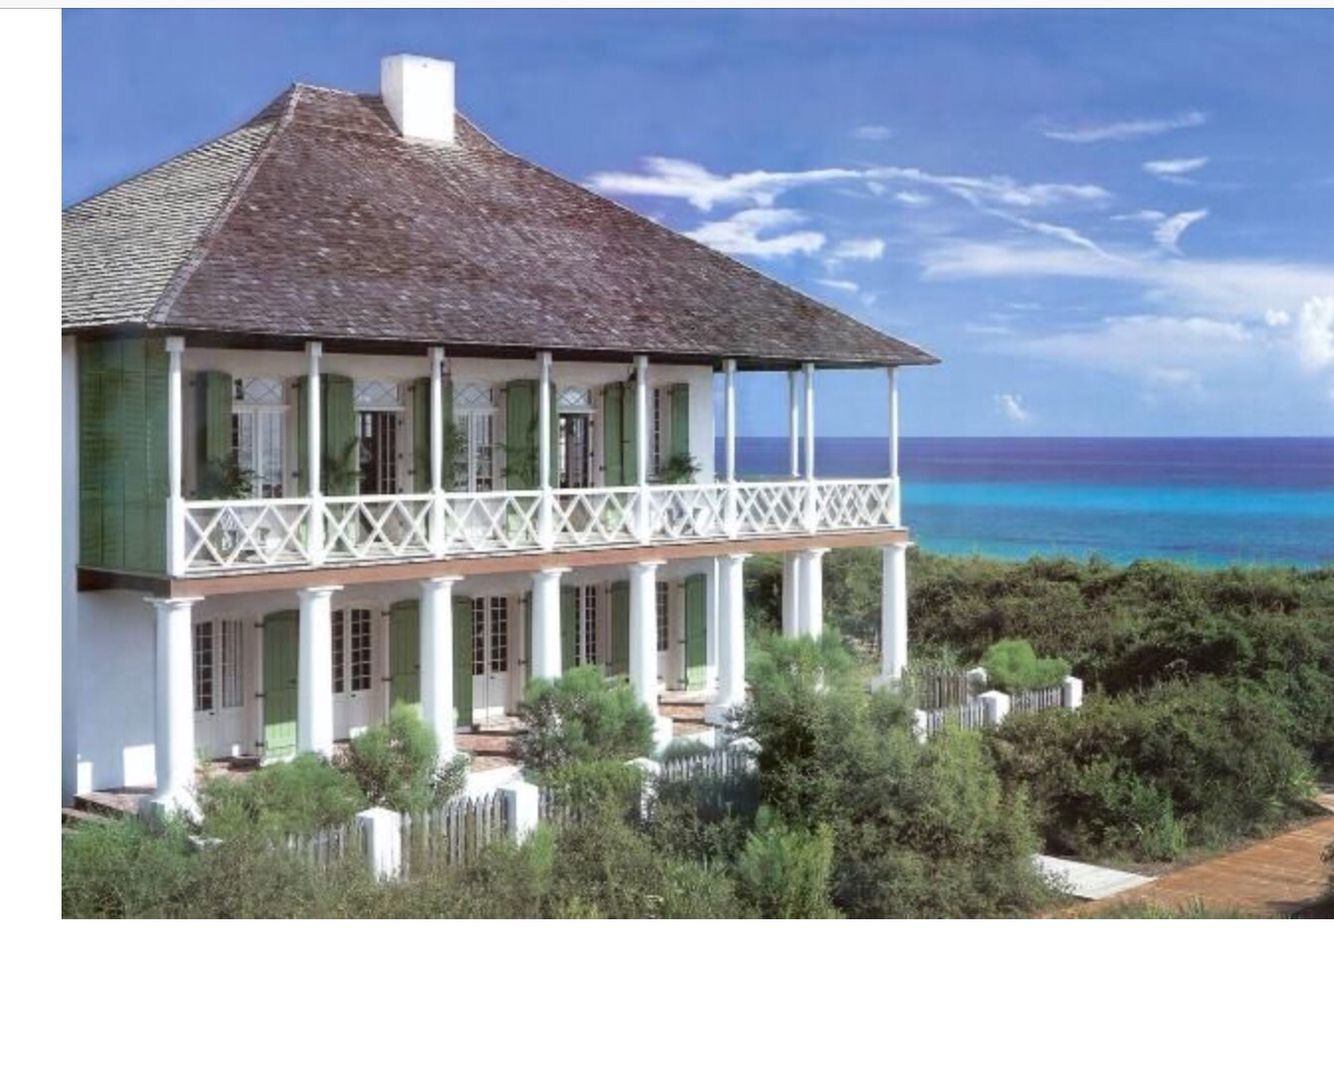 French West Indies style home in Rosemary Beach FL designed by